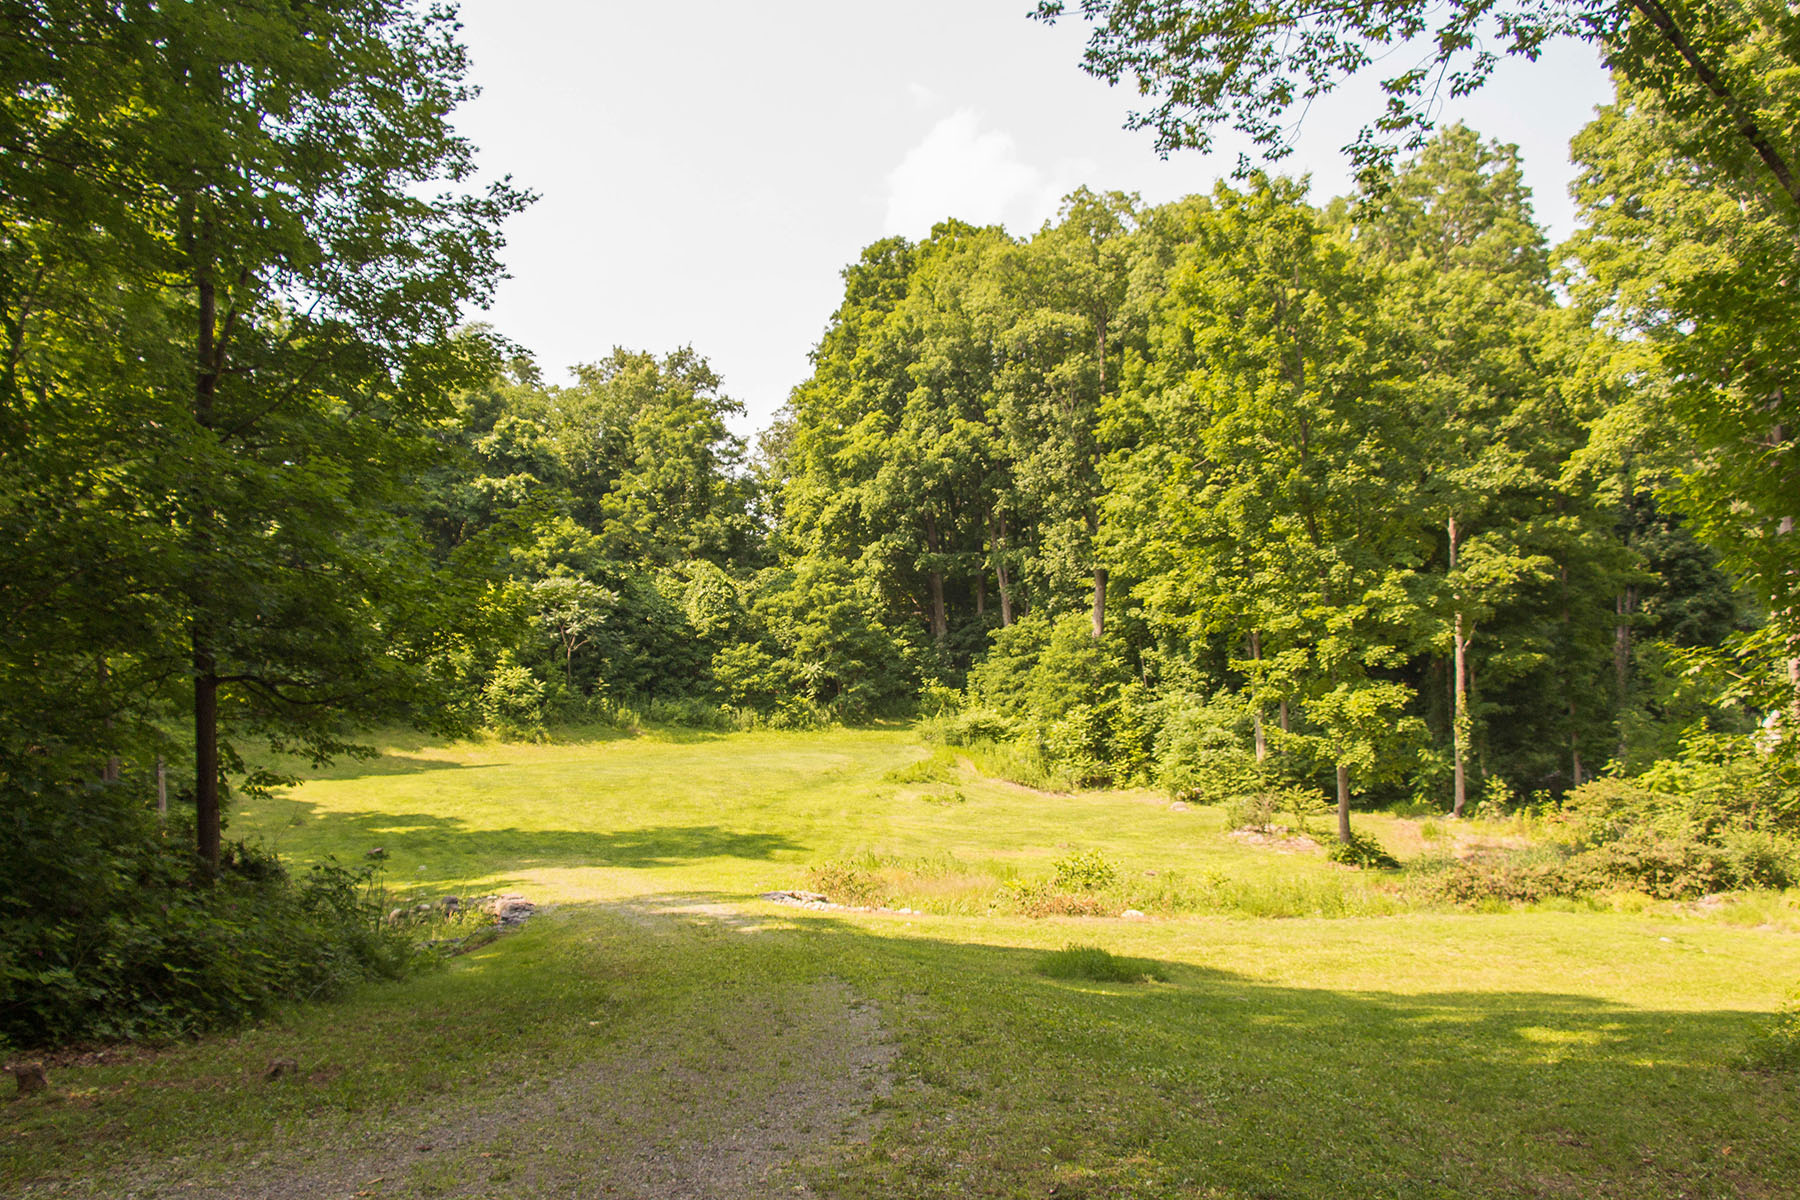 Land for Sale at Scenic Surrounding to Build Your Dream Home 183 Parkhurst Rd Wilton, New York 12831 United States